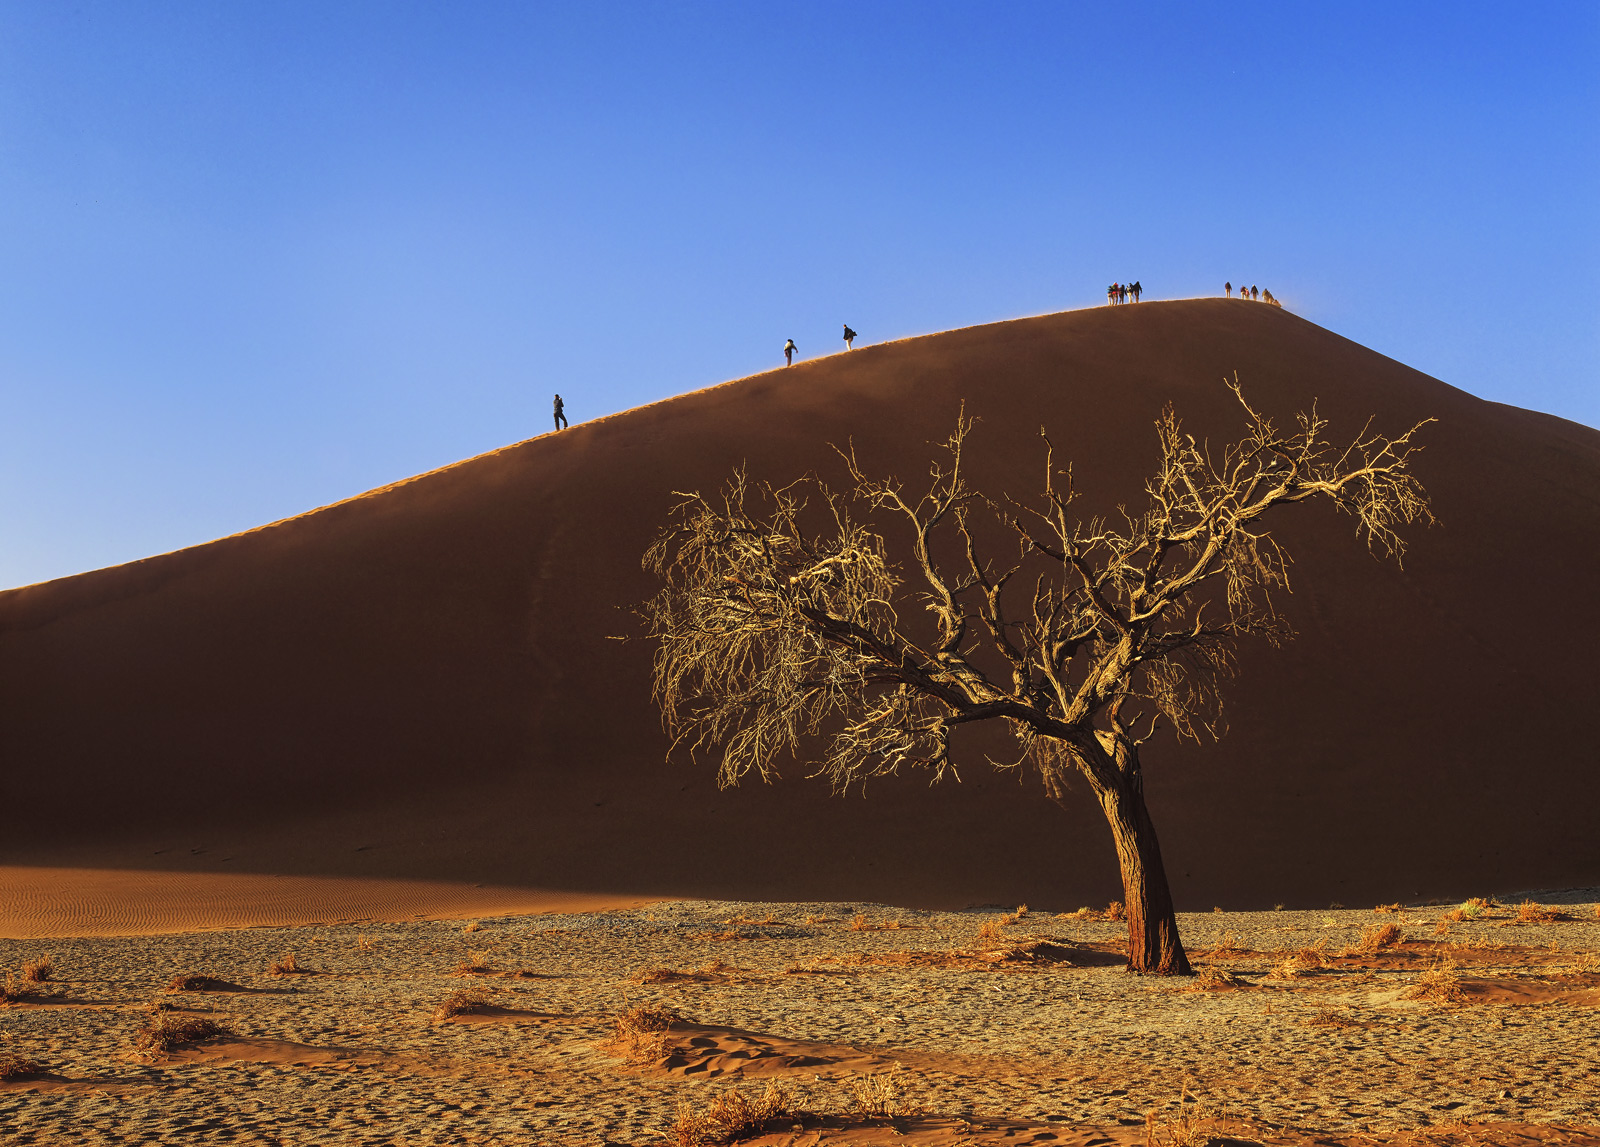 There are a few places on this planet that simply beg to be photographed and Sossusvlei is surely one of them. Vast red...